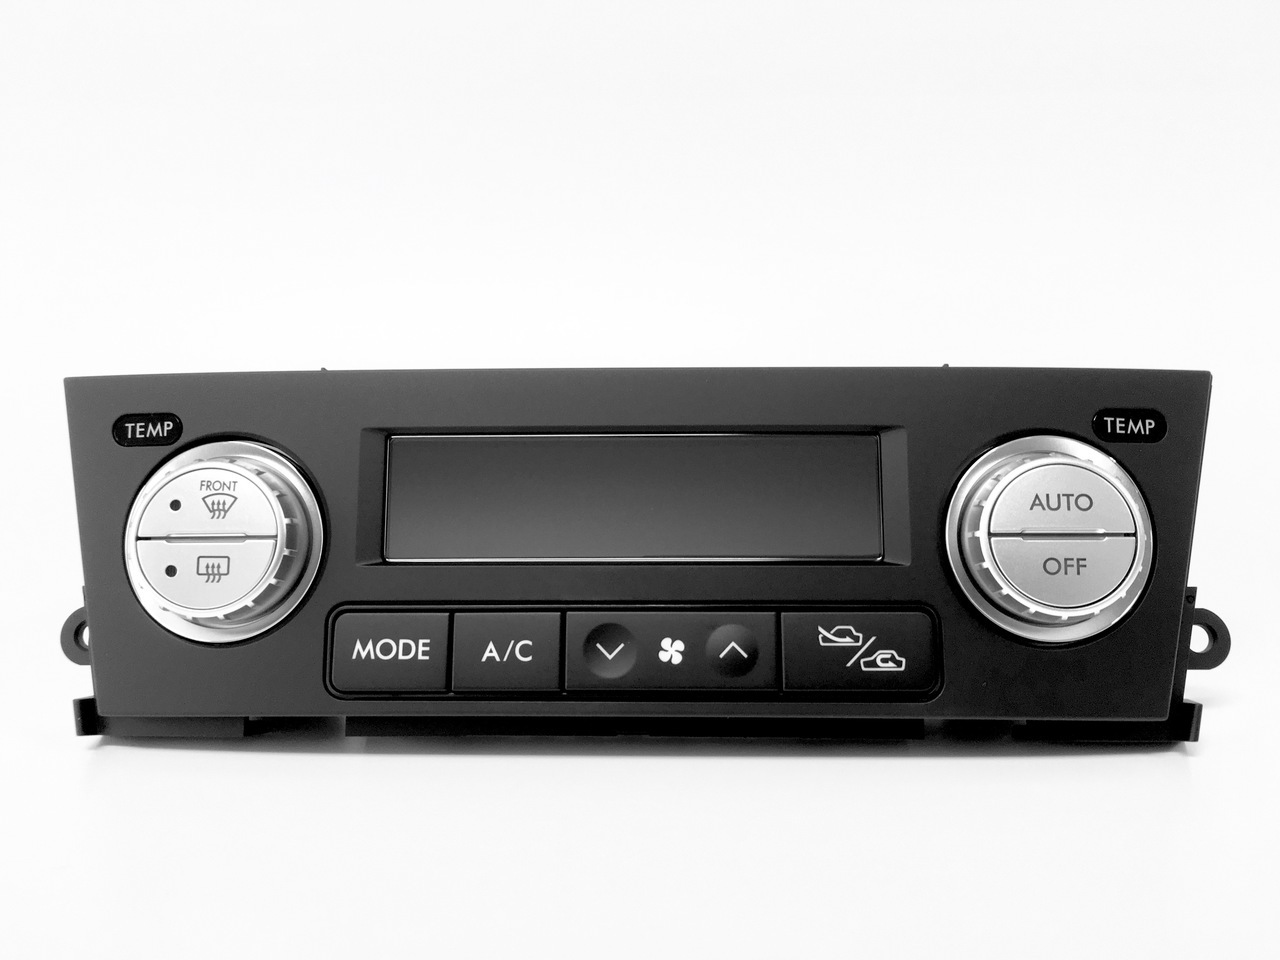 Subaru JDM H6217AG911 Dual Zone AV Panel at AVOJDM